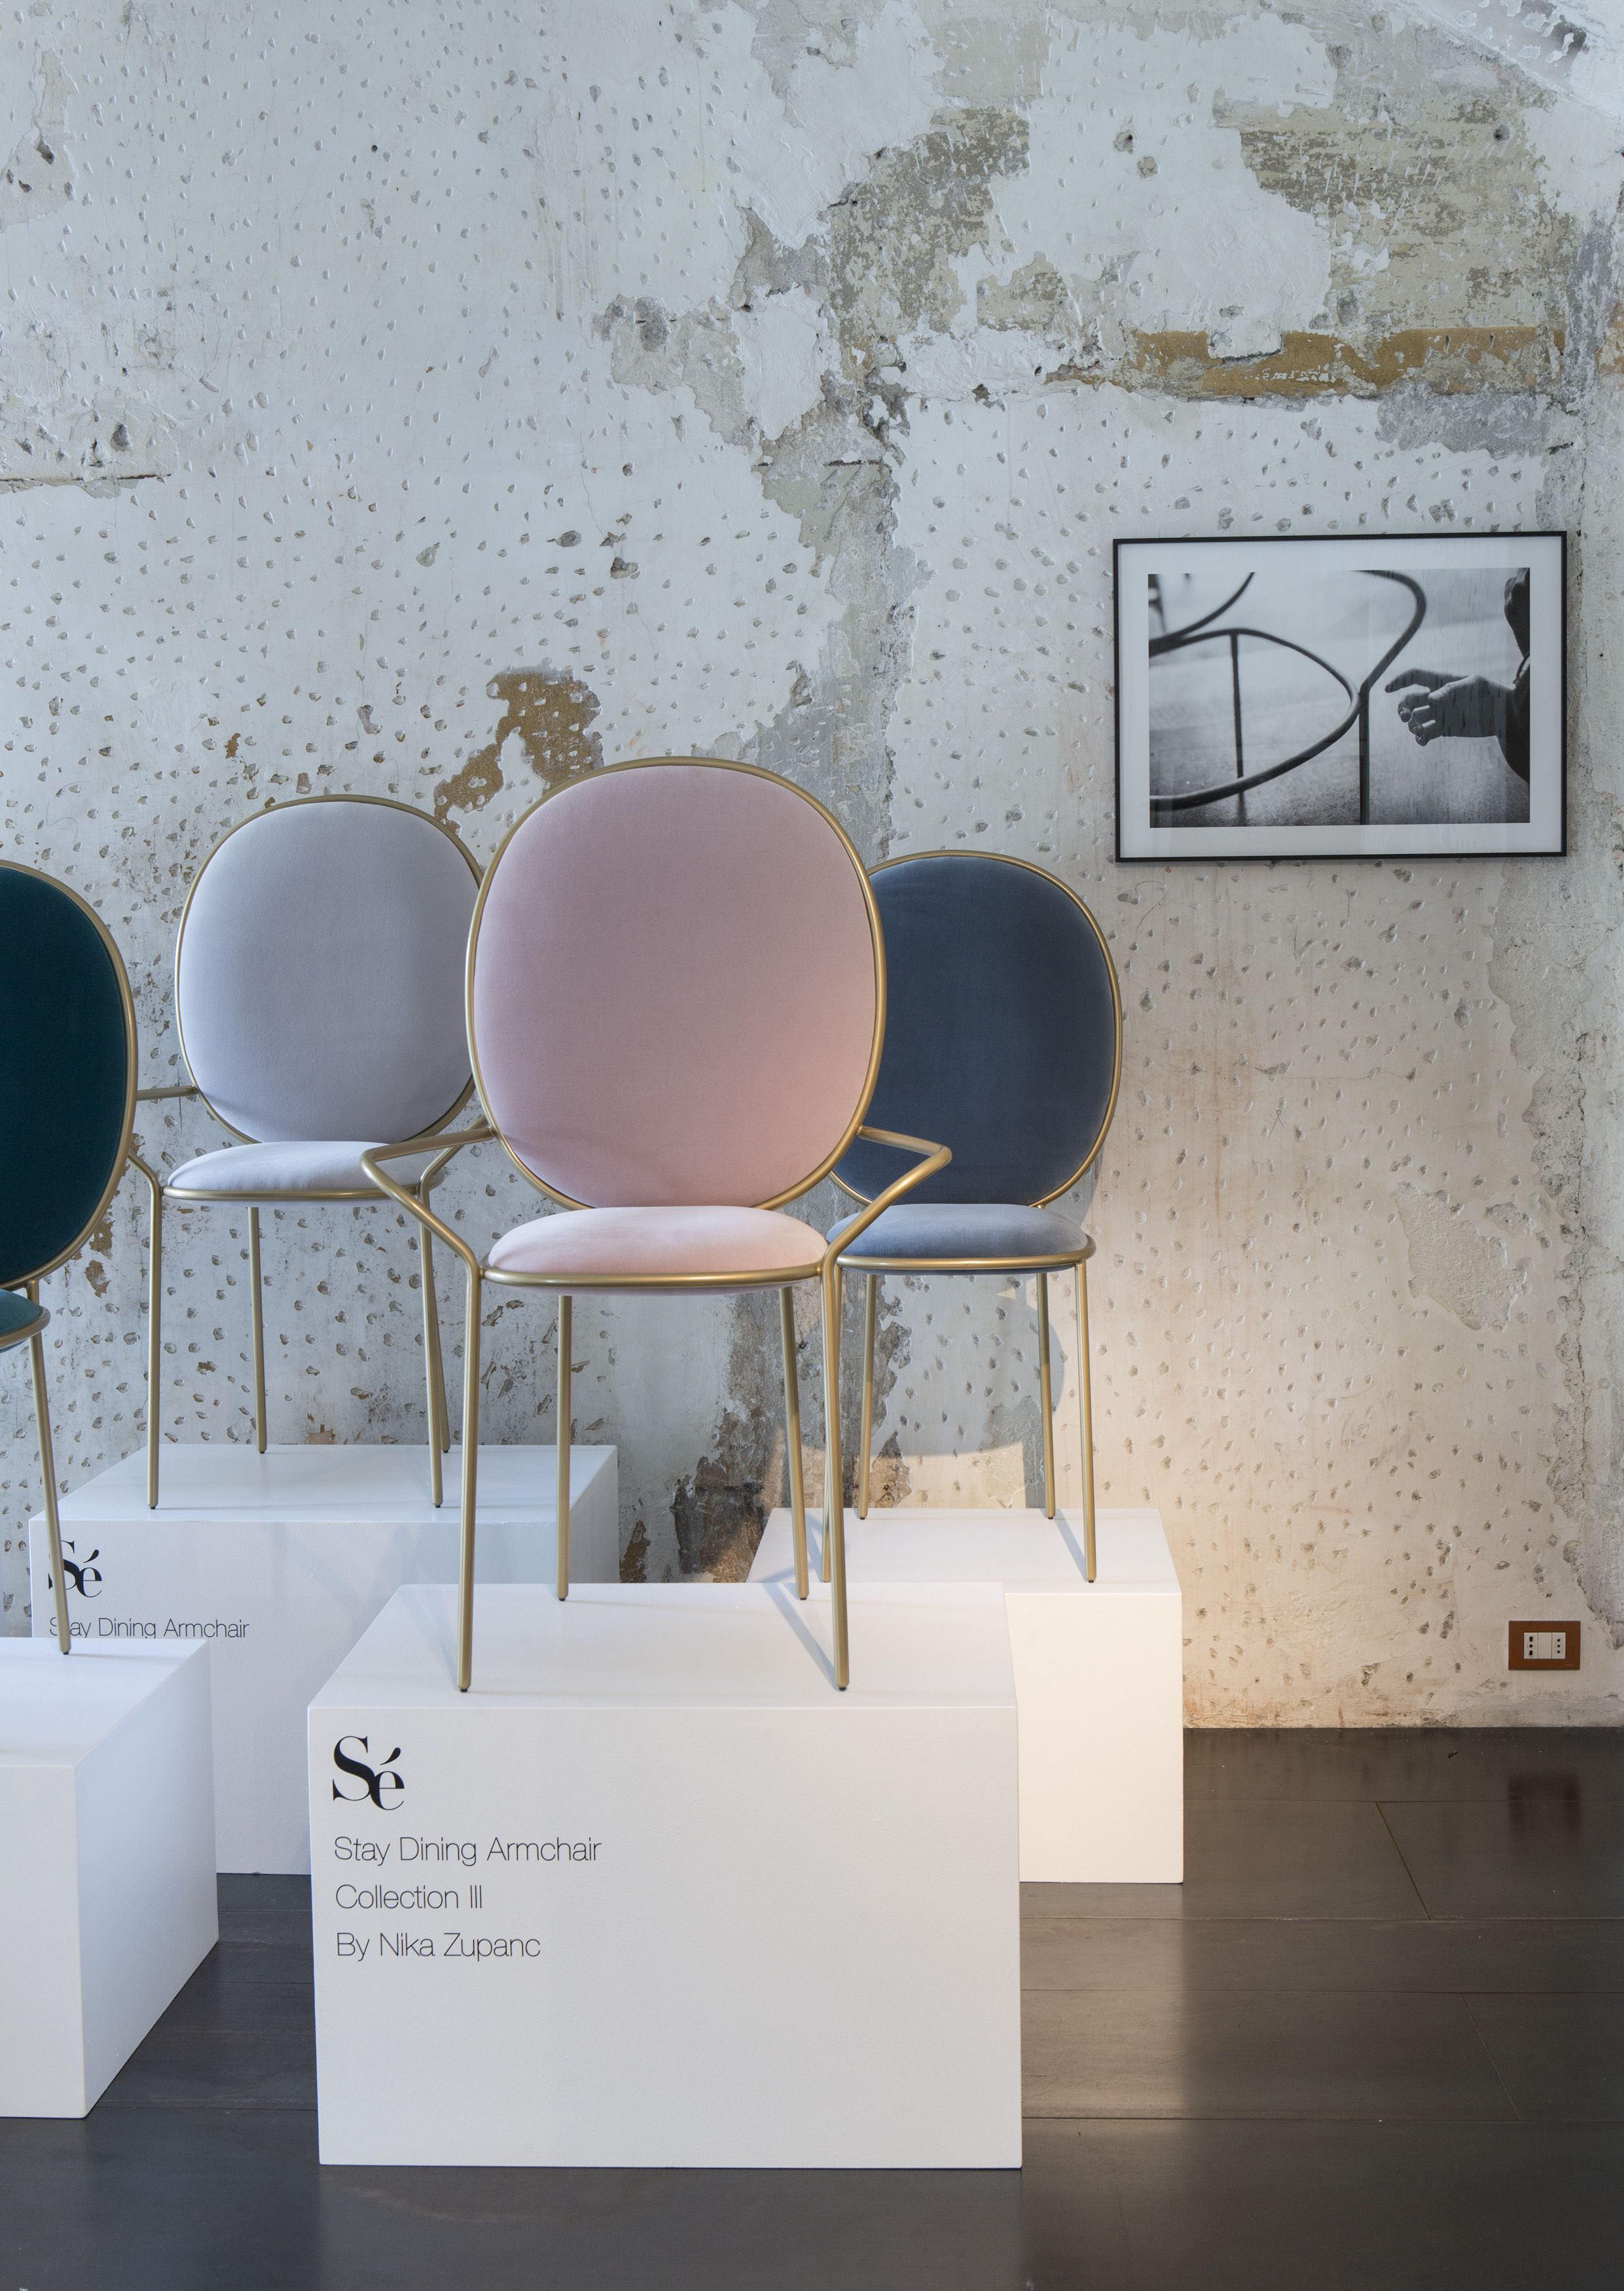 Stay Dining Armchair Stay Dining Chair Sé at Spazio Rossana